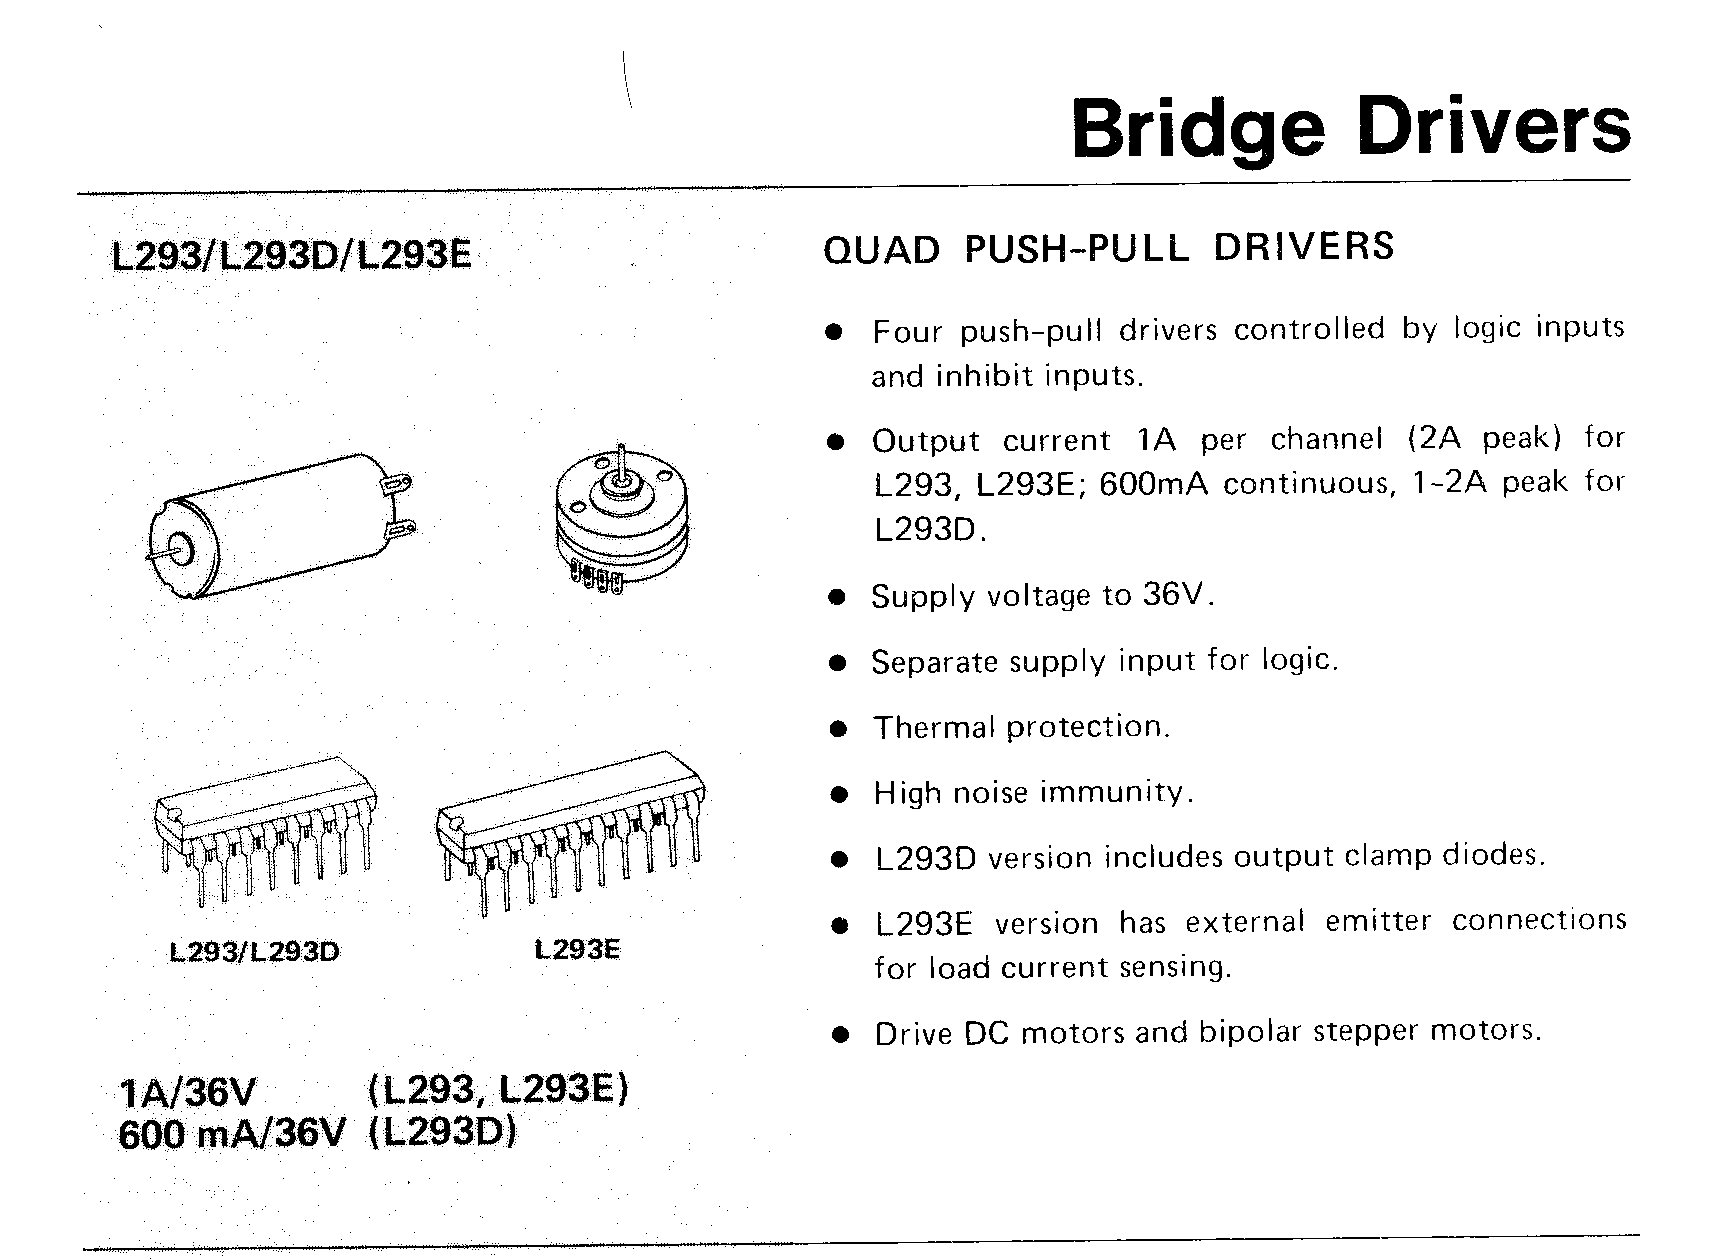 Resources Index Also Stepper Motor Schematic On L297 Driver Unipolar Applications Of Monolithic Bridge Drivers L293 L293e L298 Pdf 27mb Tip122 Parallel